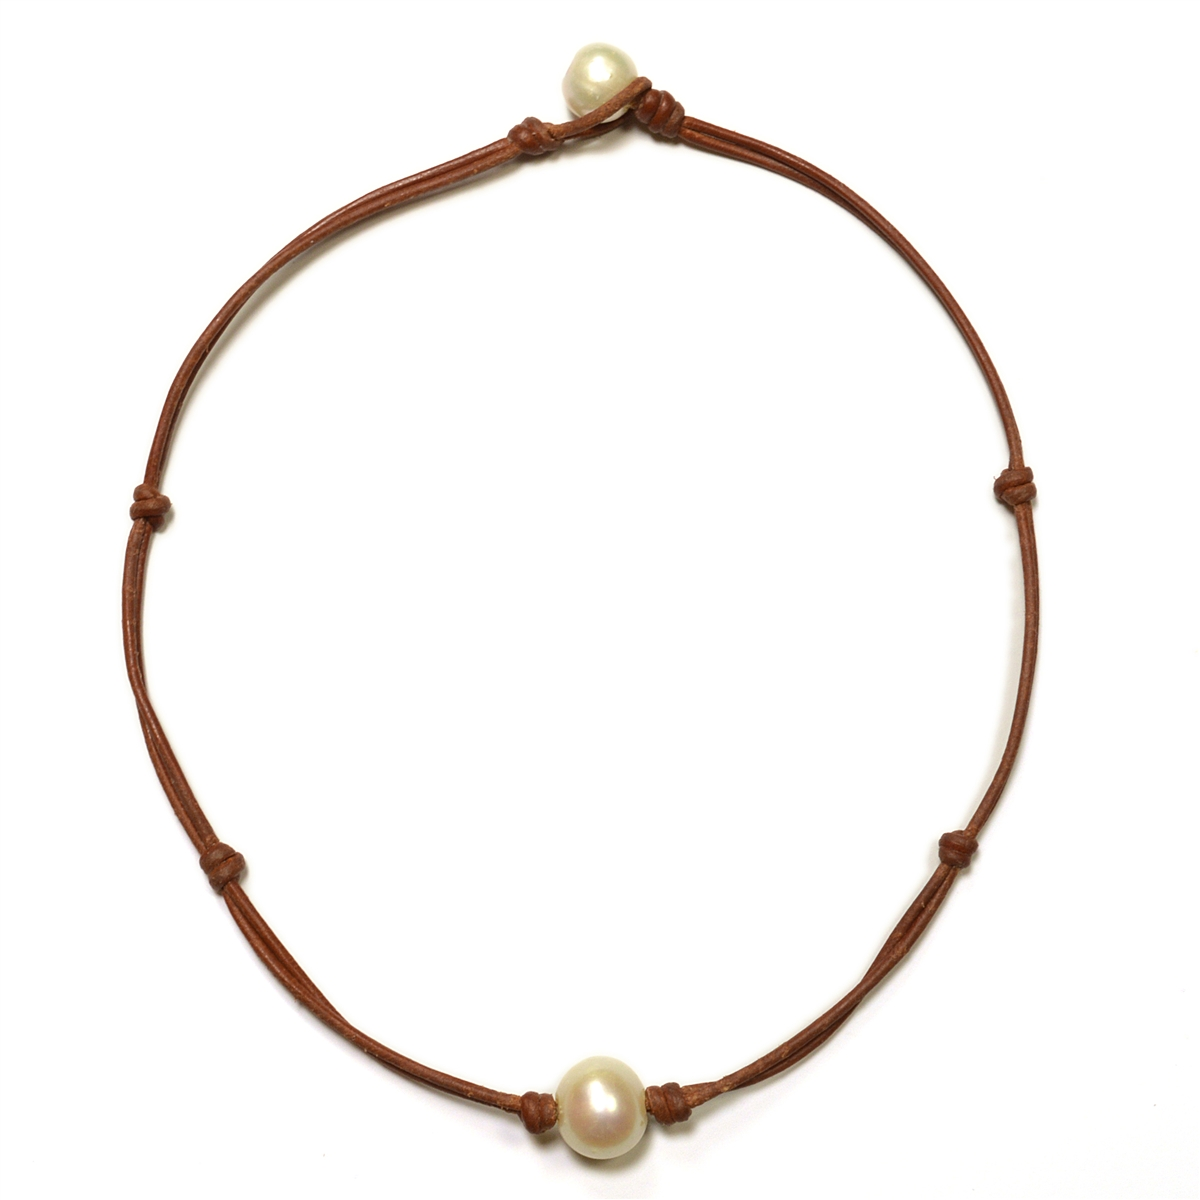 Fine Pearls And Leather Jewelry By Designer Wendy Mignot Zak Freshwater  Necklace With Knots White